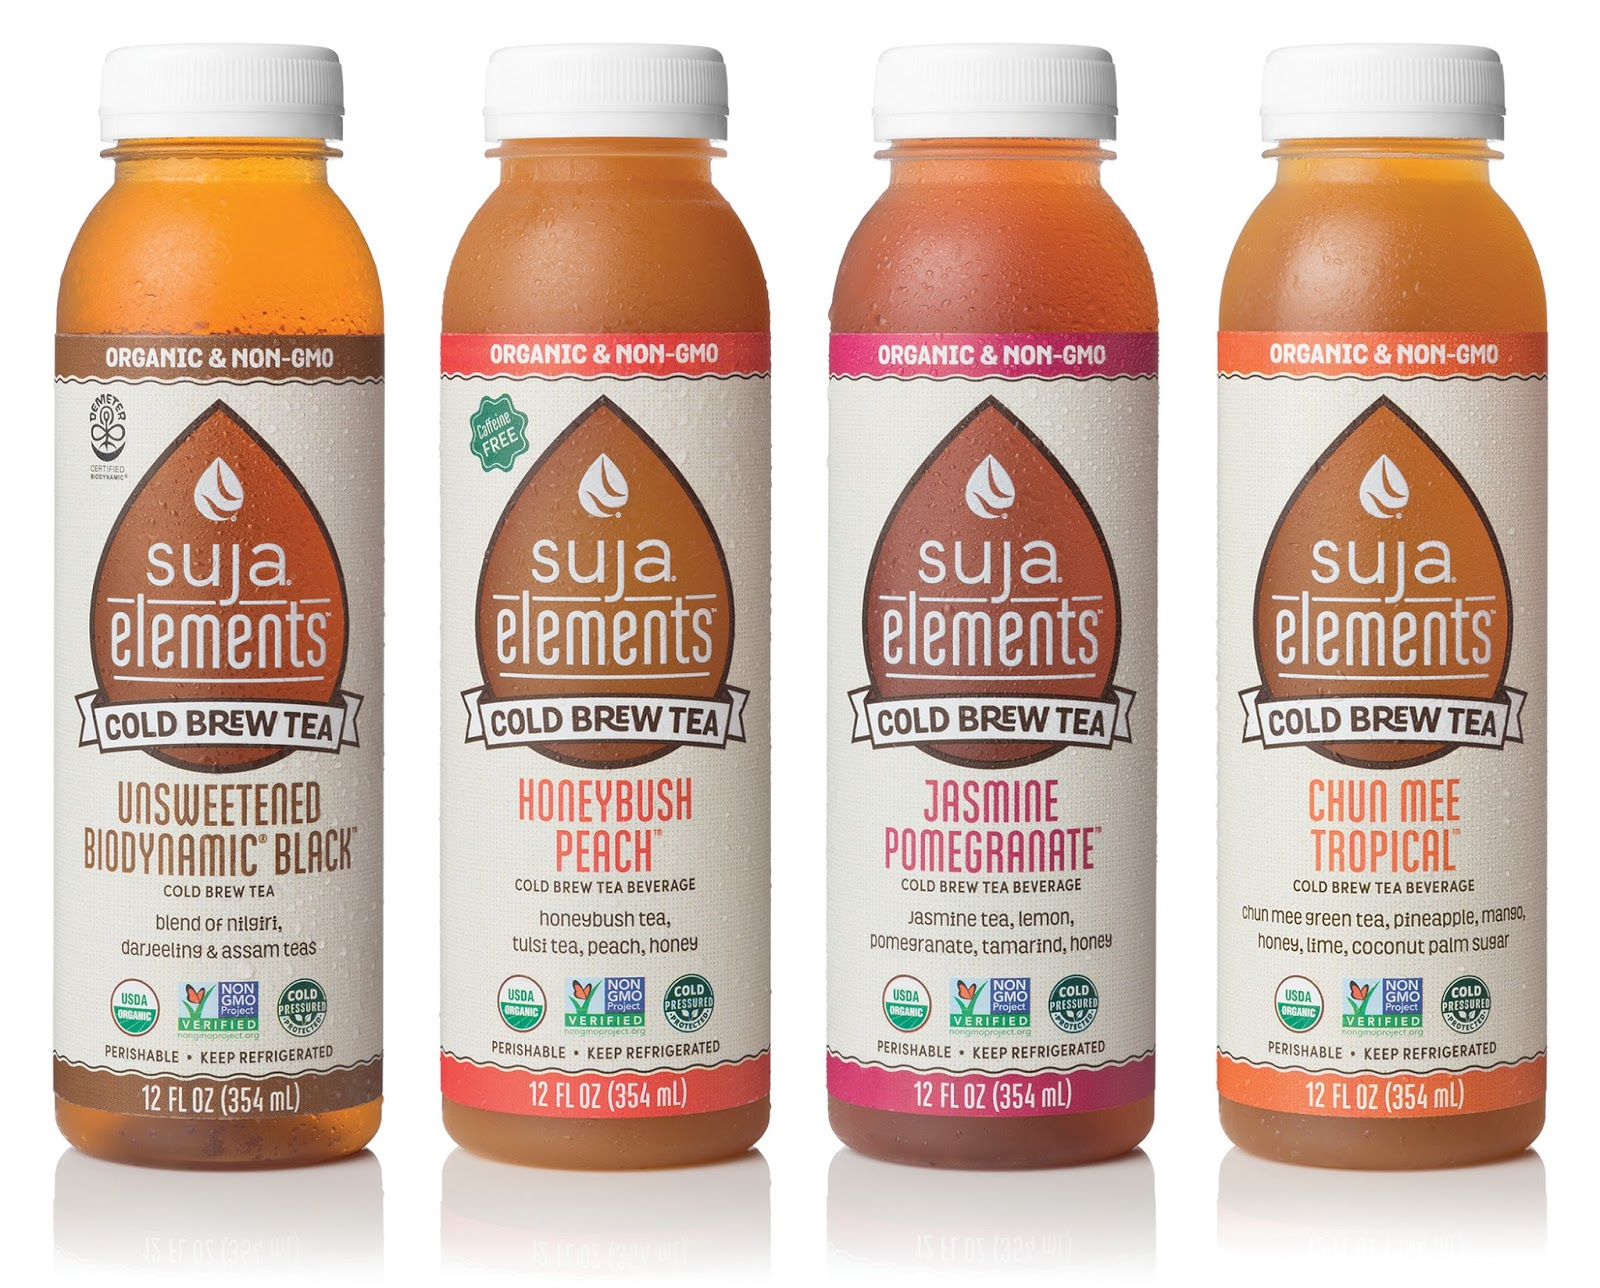 Suja Elements Cold Brew Tea On Packaging Of The World